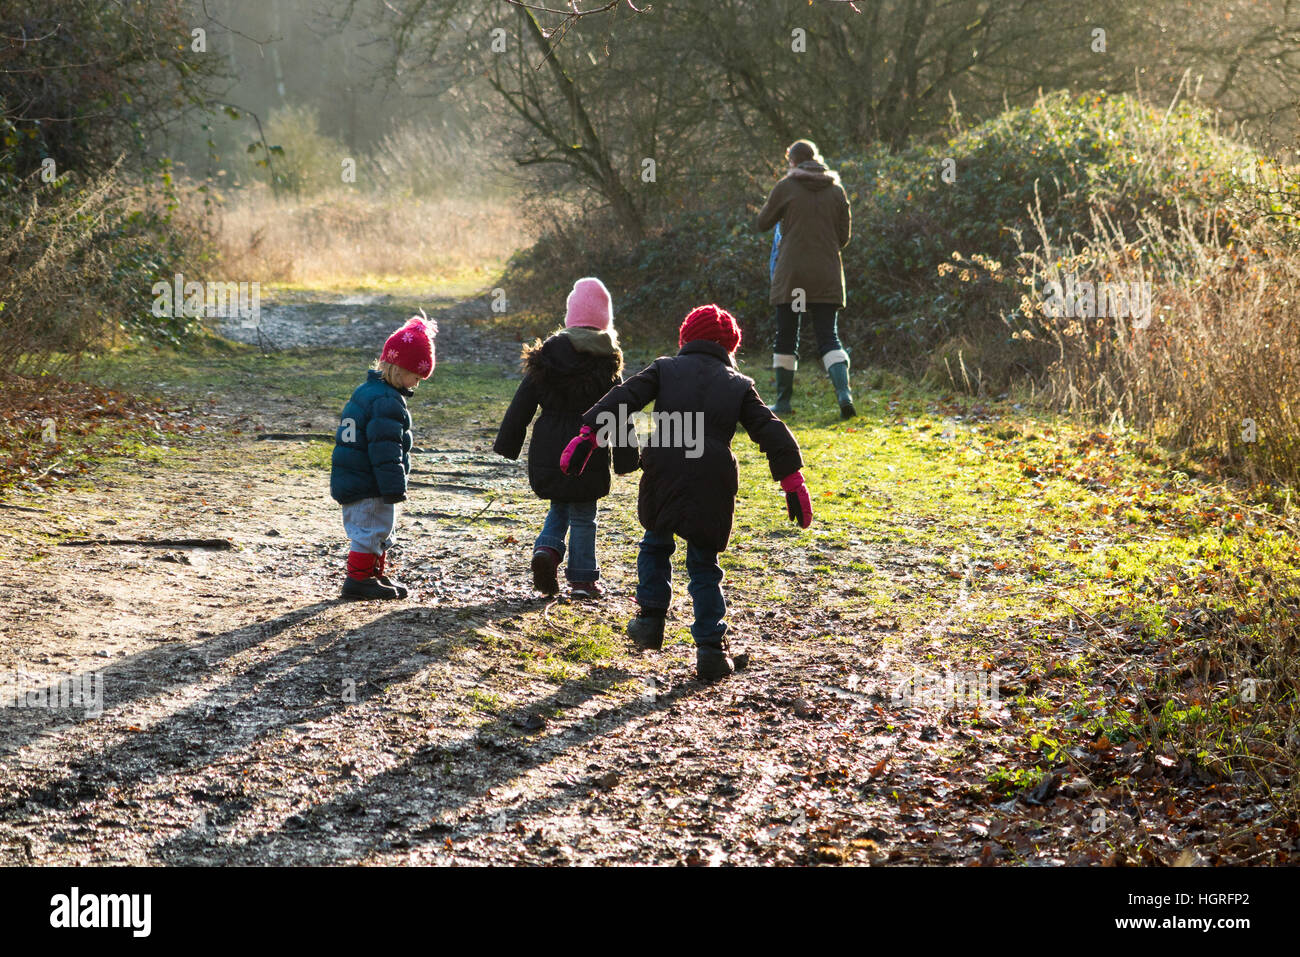 Mother & 3 children three kids daughters walking / walk along muddy path / in mud on walkway pathway foot path - Stock Image